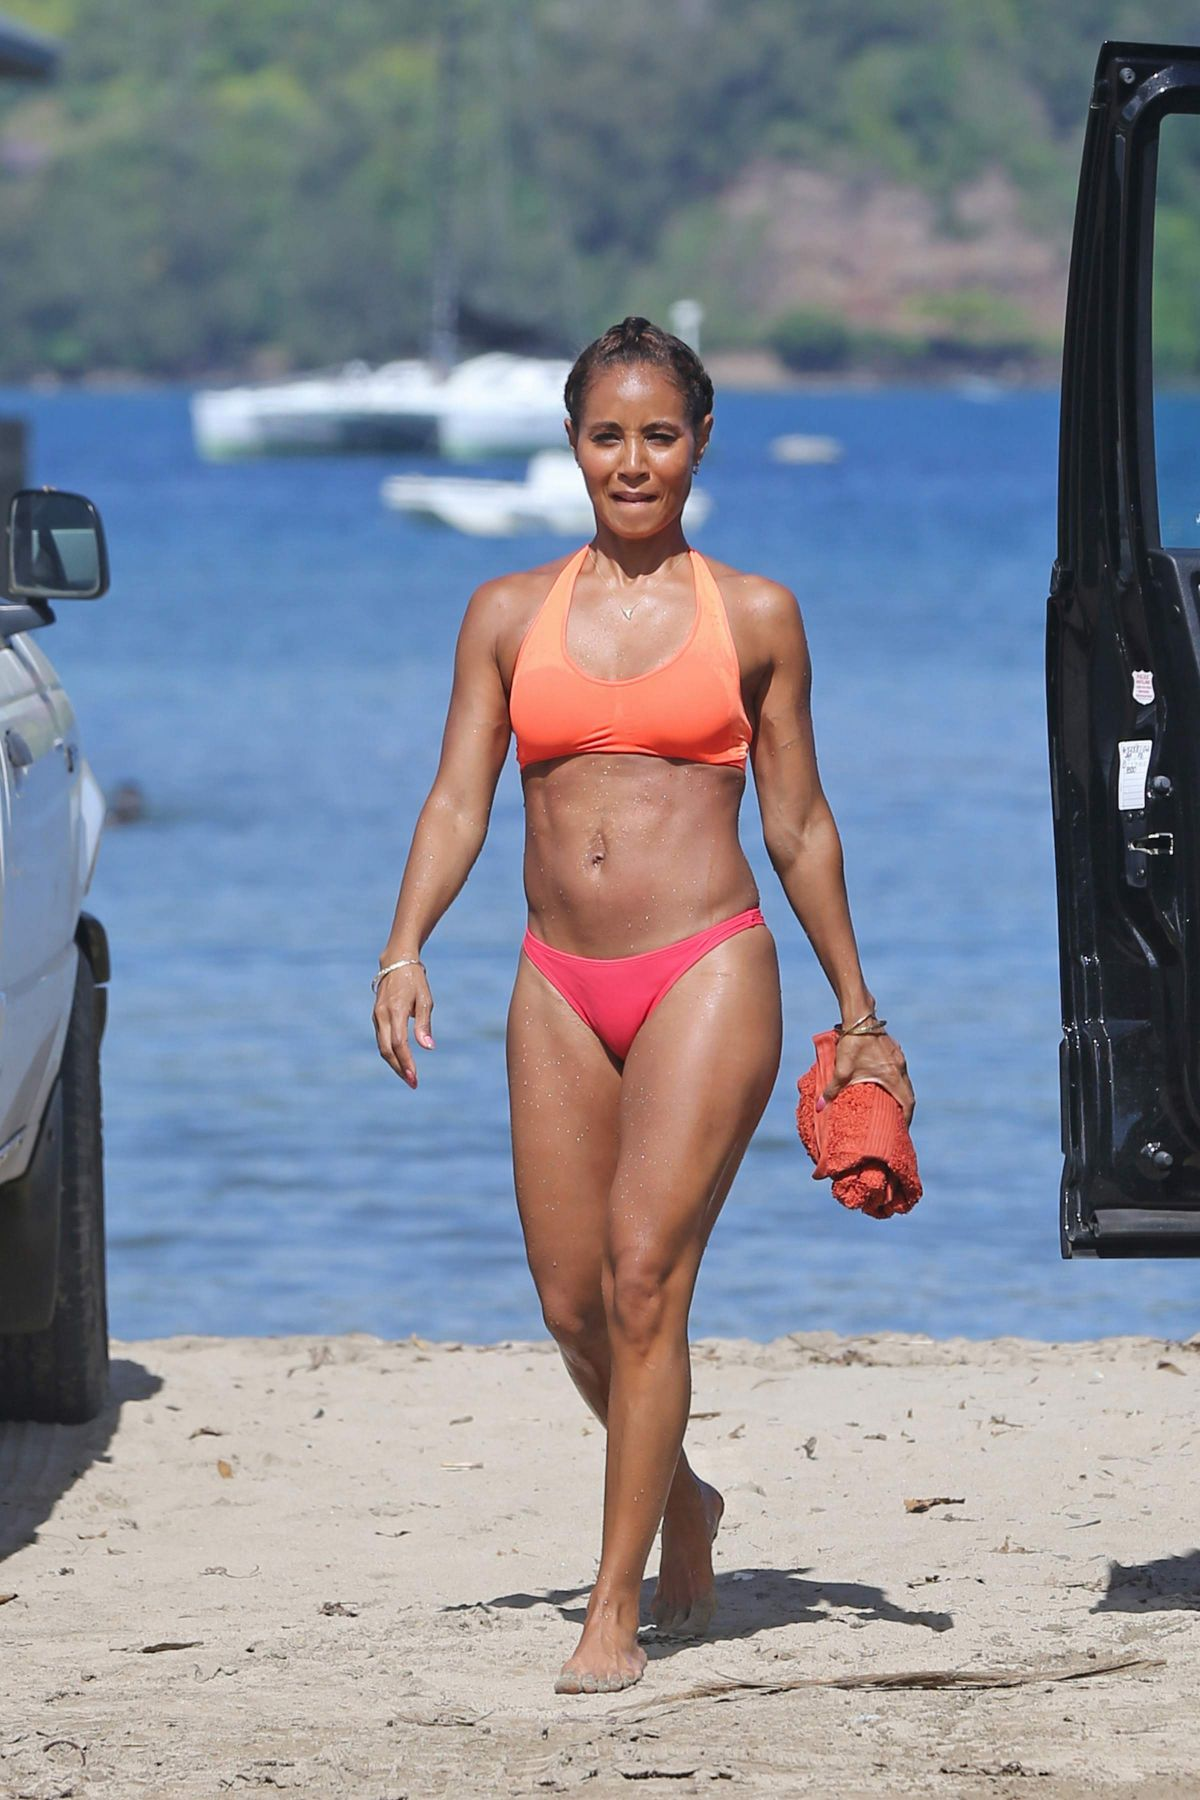 jada pinkett smith woojada pinkett smith young, jada pinkett smith 2016, jada pinkett smith latest photo, jada pinkett smith matrix, jada pinkett smith instagram, jada pinkett smith 2017, jada pinkett smith photo, jada pinkett smith astrotheme, jada pinkett smith taille, jada pinkett smith net worth, jada pinkett smith comedy, jada pinkett smith feet gotham, jada pinkett smith altura, jada pinkett smith imdb, jada pinkett smith woo, jada pinkett smith about tupac, jada pinkett smith vegetarian, jada pinkett smith hairstyles, jada pinkett smith band, jada pinkett smith wdw